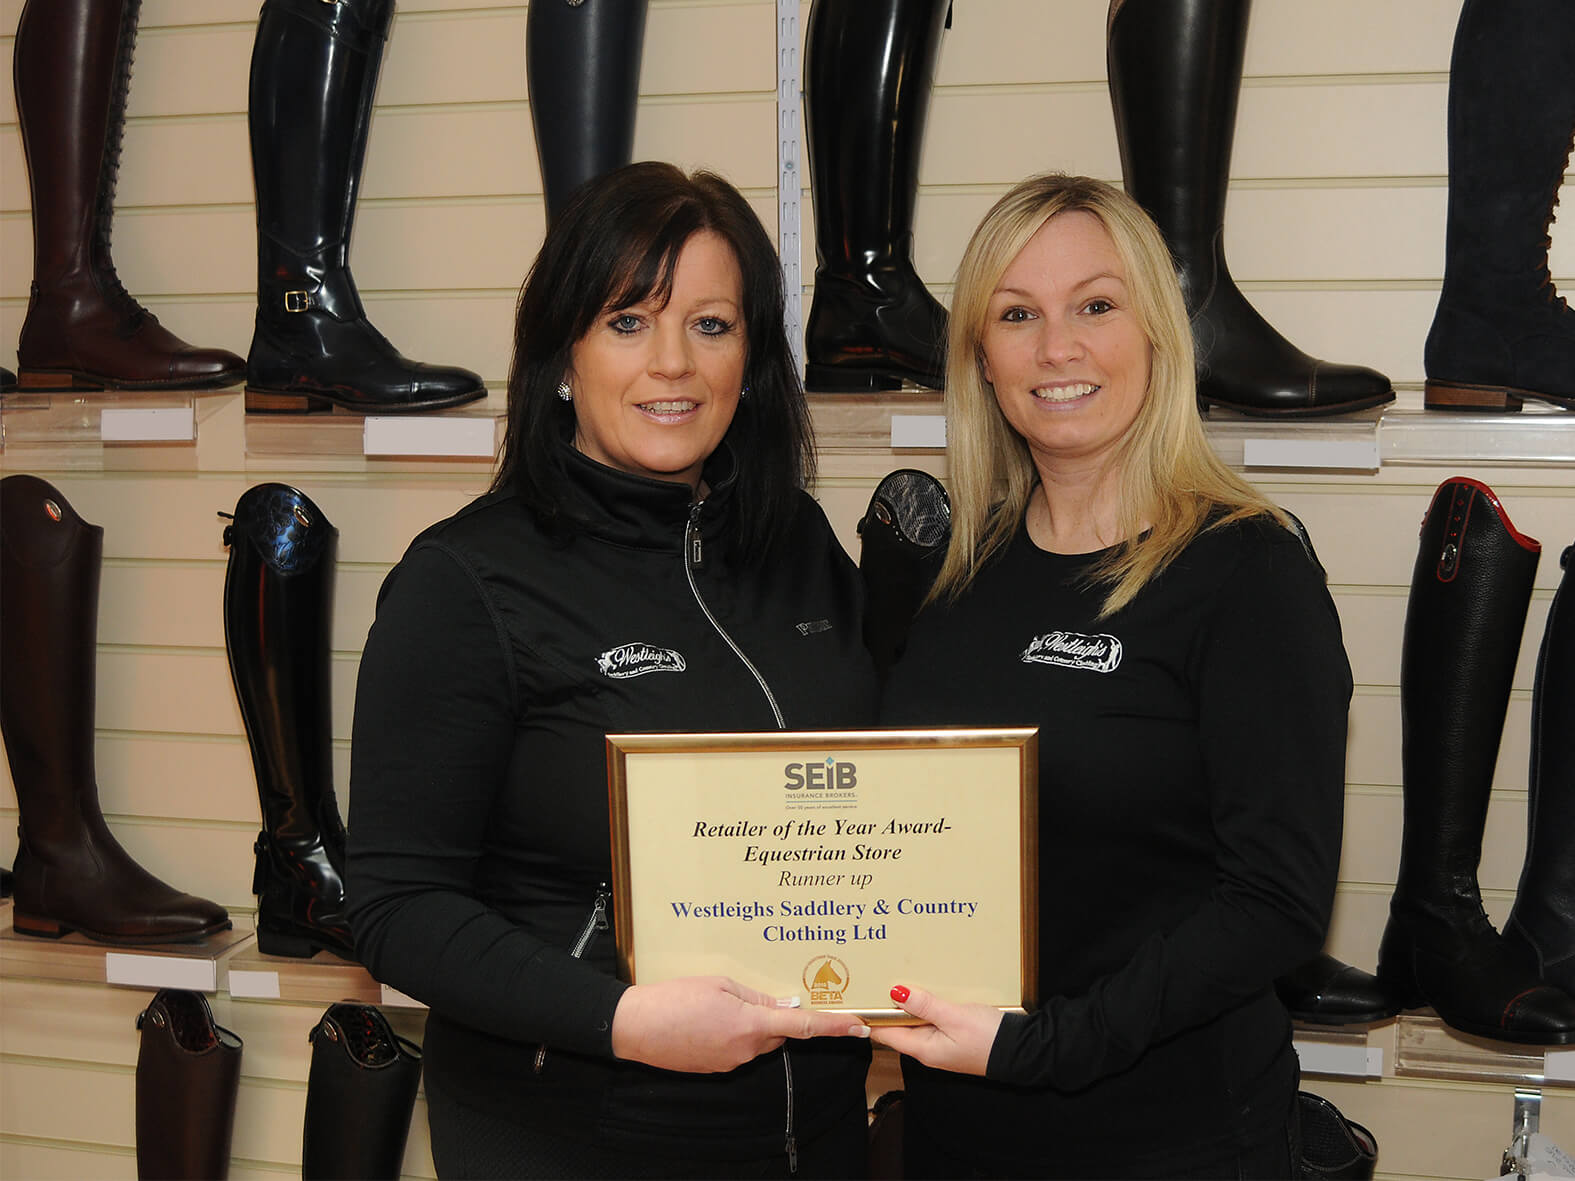 Westleighs Saddlery and Country Clothing retailer of the year